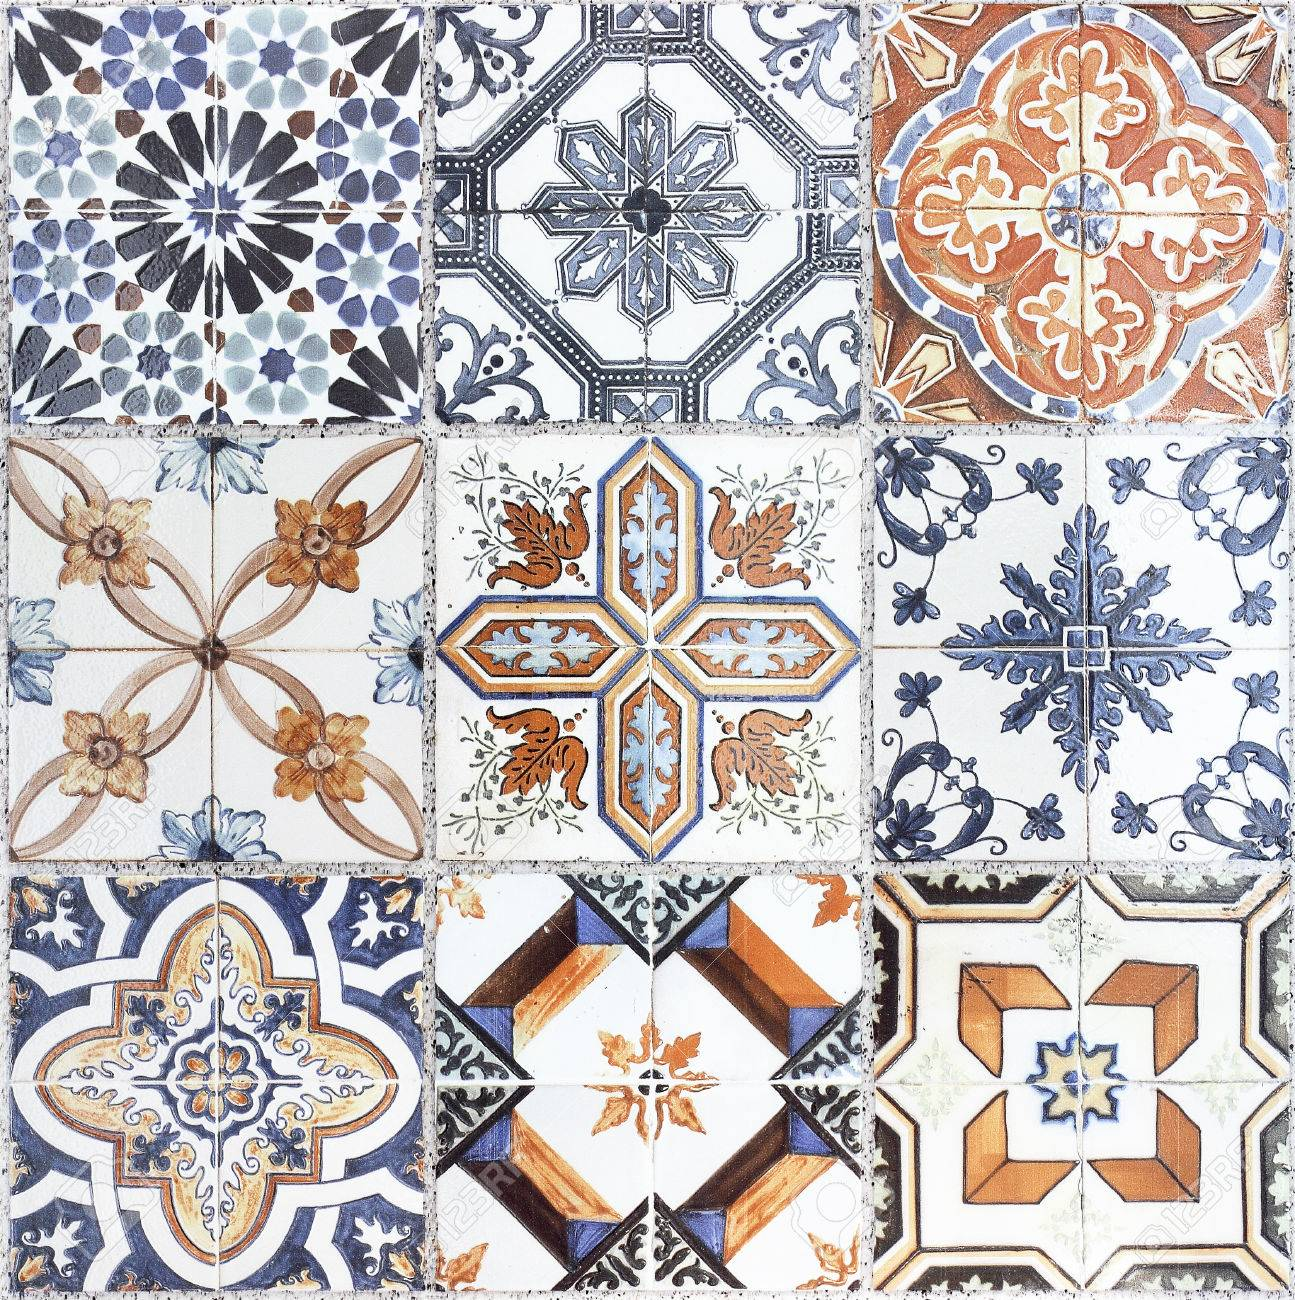 Beautiful Old Wall Ceramic Tiles Patterns Stock Photo, Picture And ...